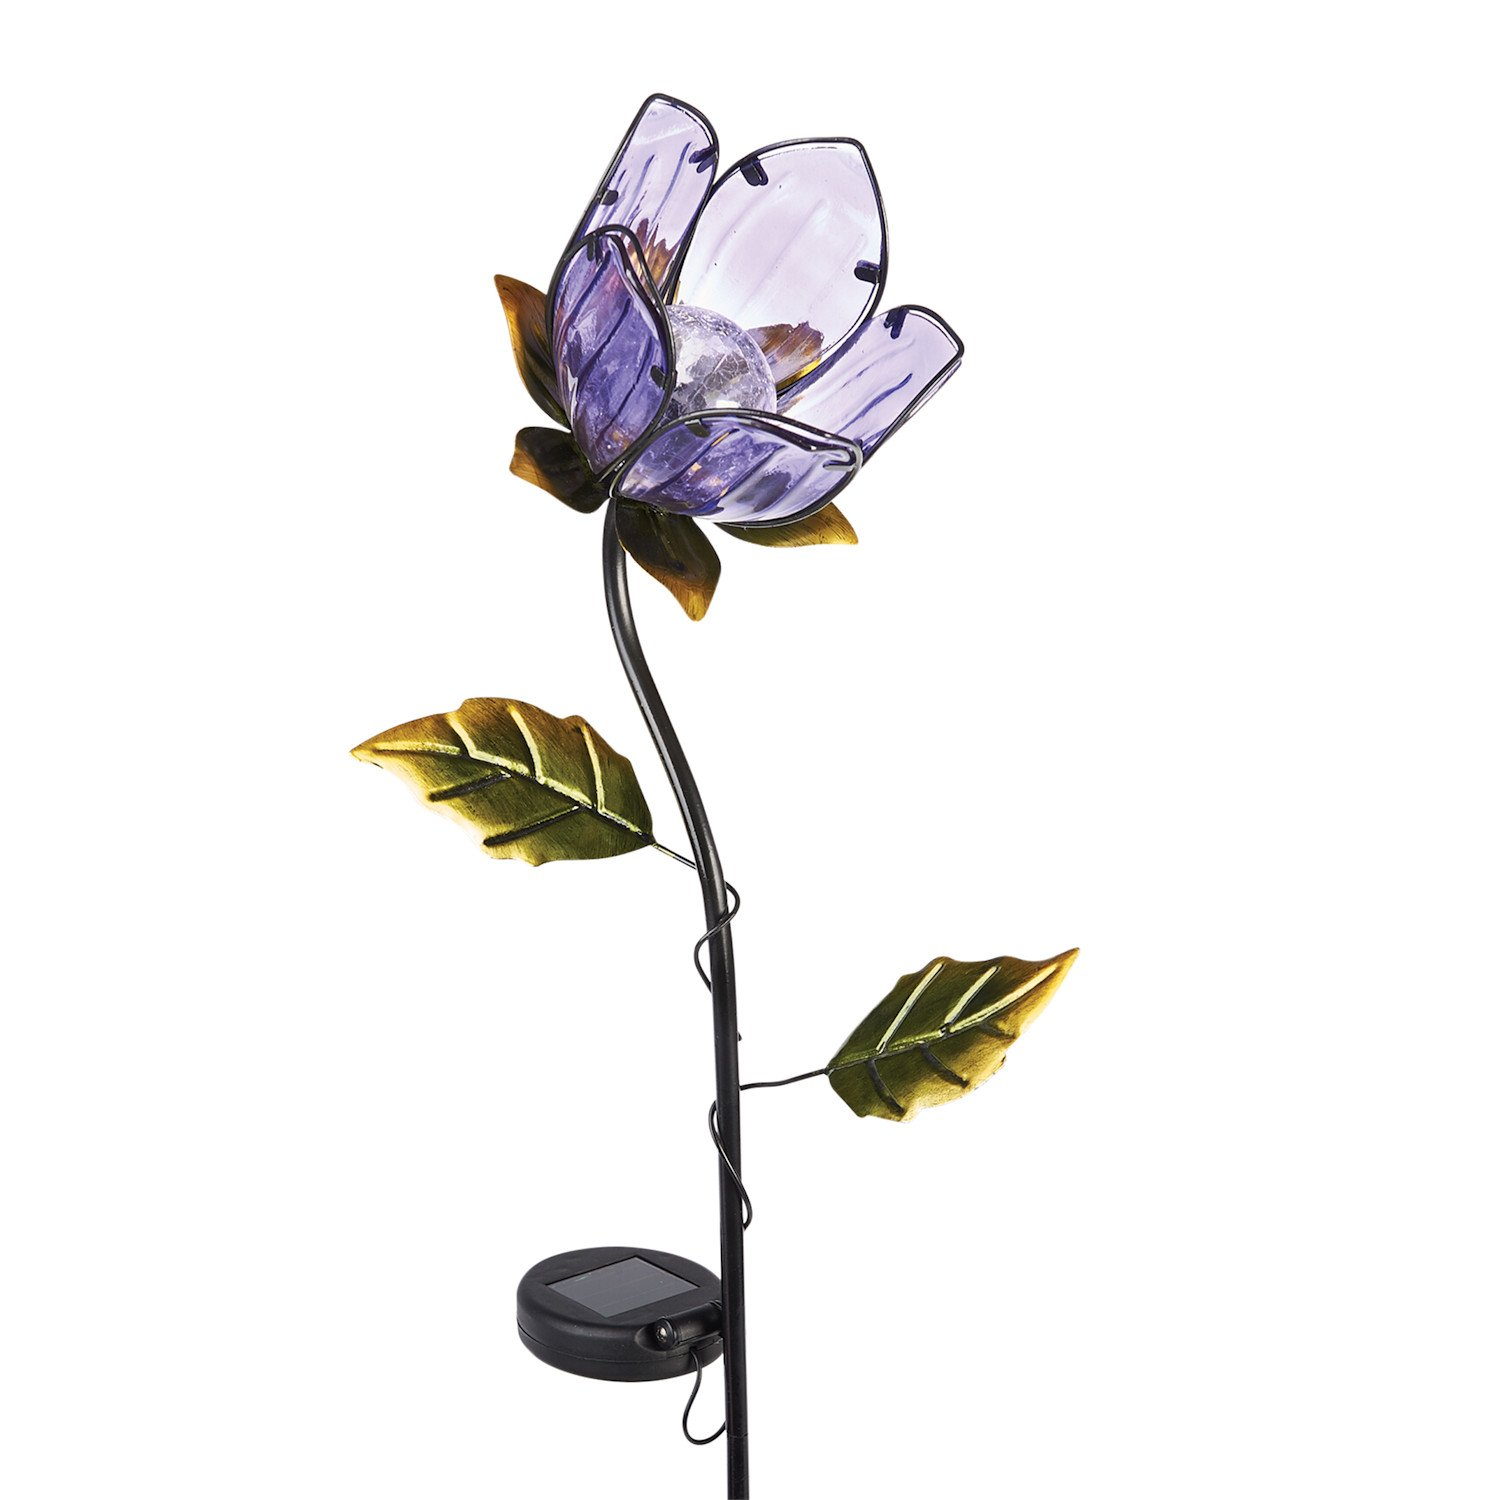 ART & ARTIFACT Lighted Purple Flower Glass & Metal Garden Stake - Solar Powered Light-Up - 36'' Tall